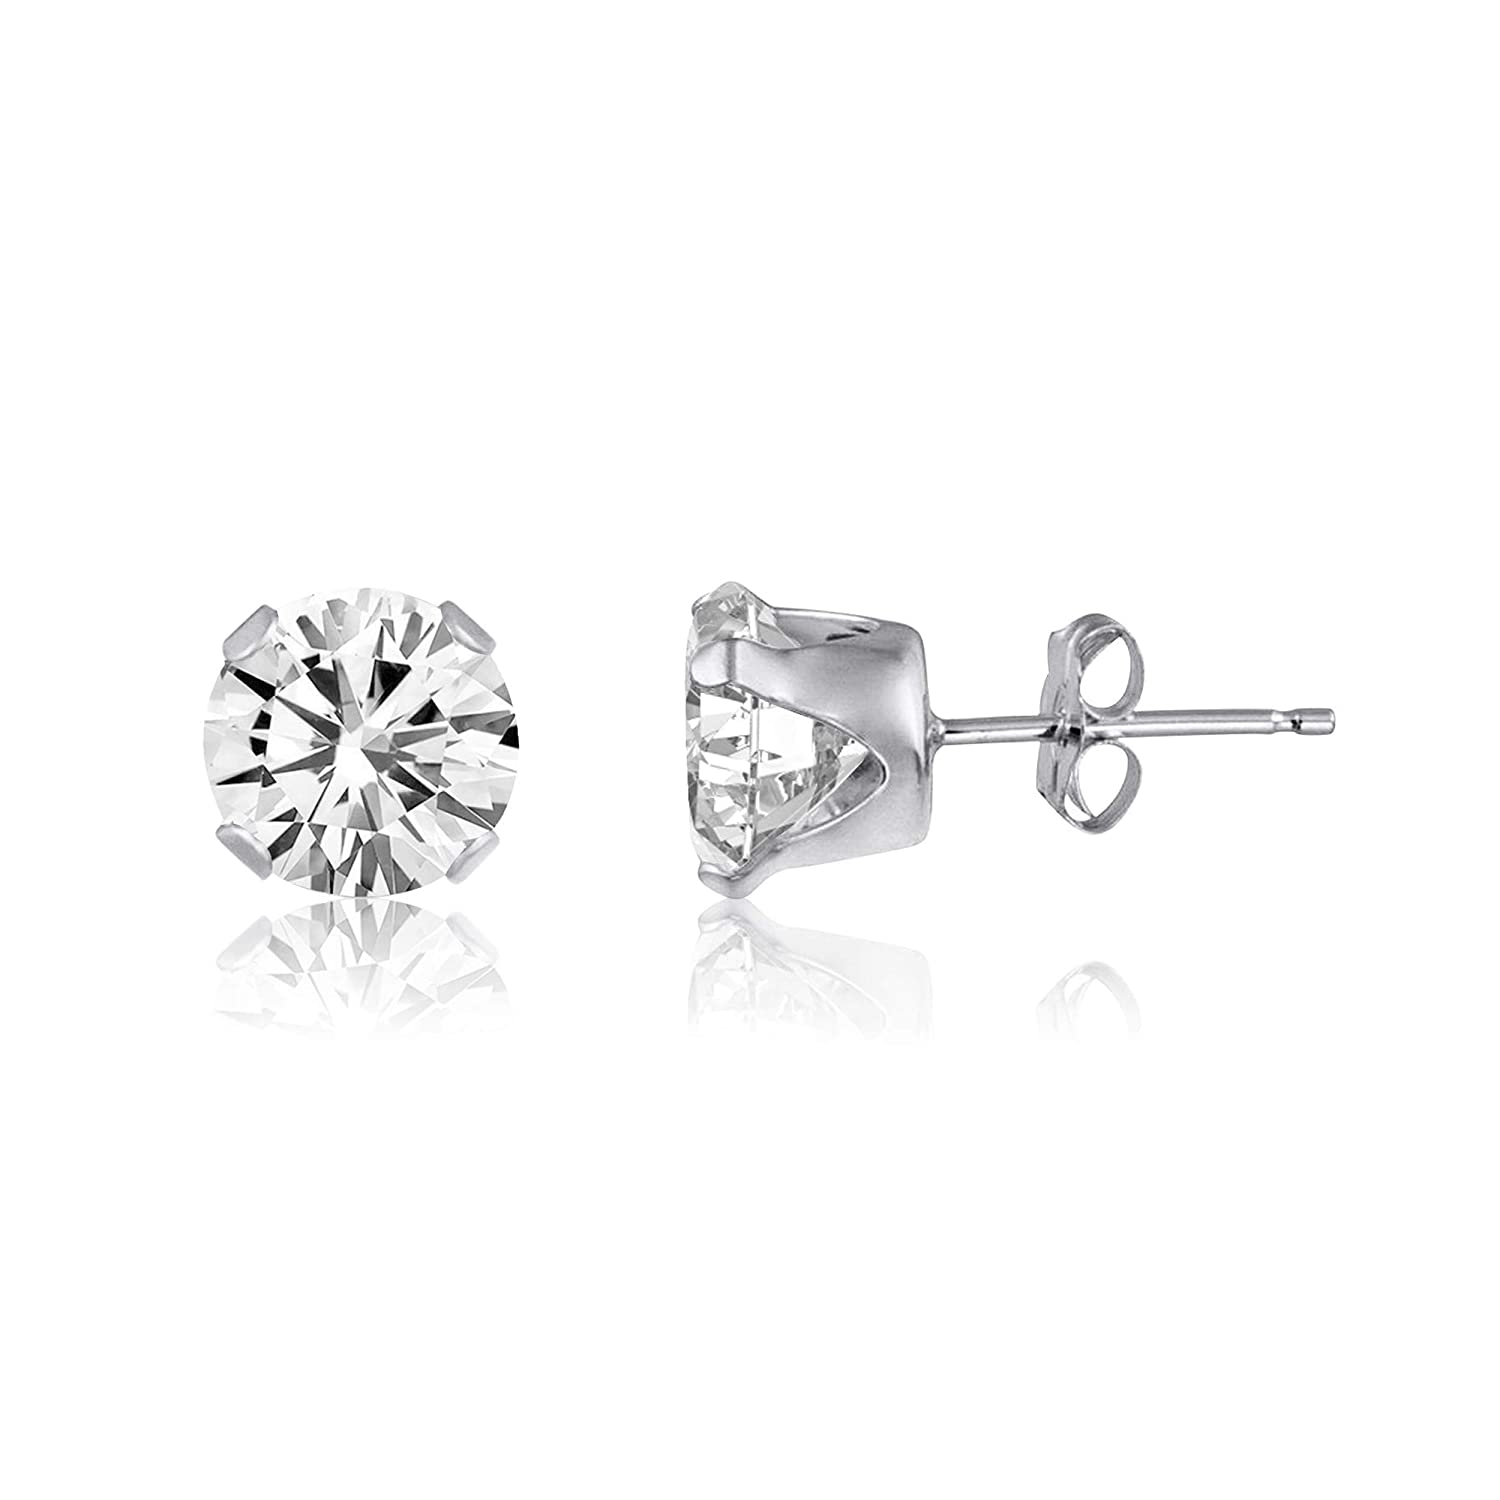 NATALIA DRAKE Genuine Round Unisex Tanzanite or White Topaz Stud Earrings or Pendant Birthstone in Sterling Silver